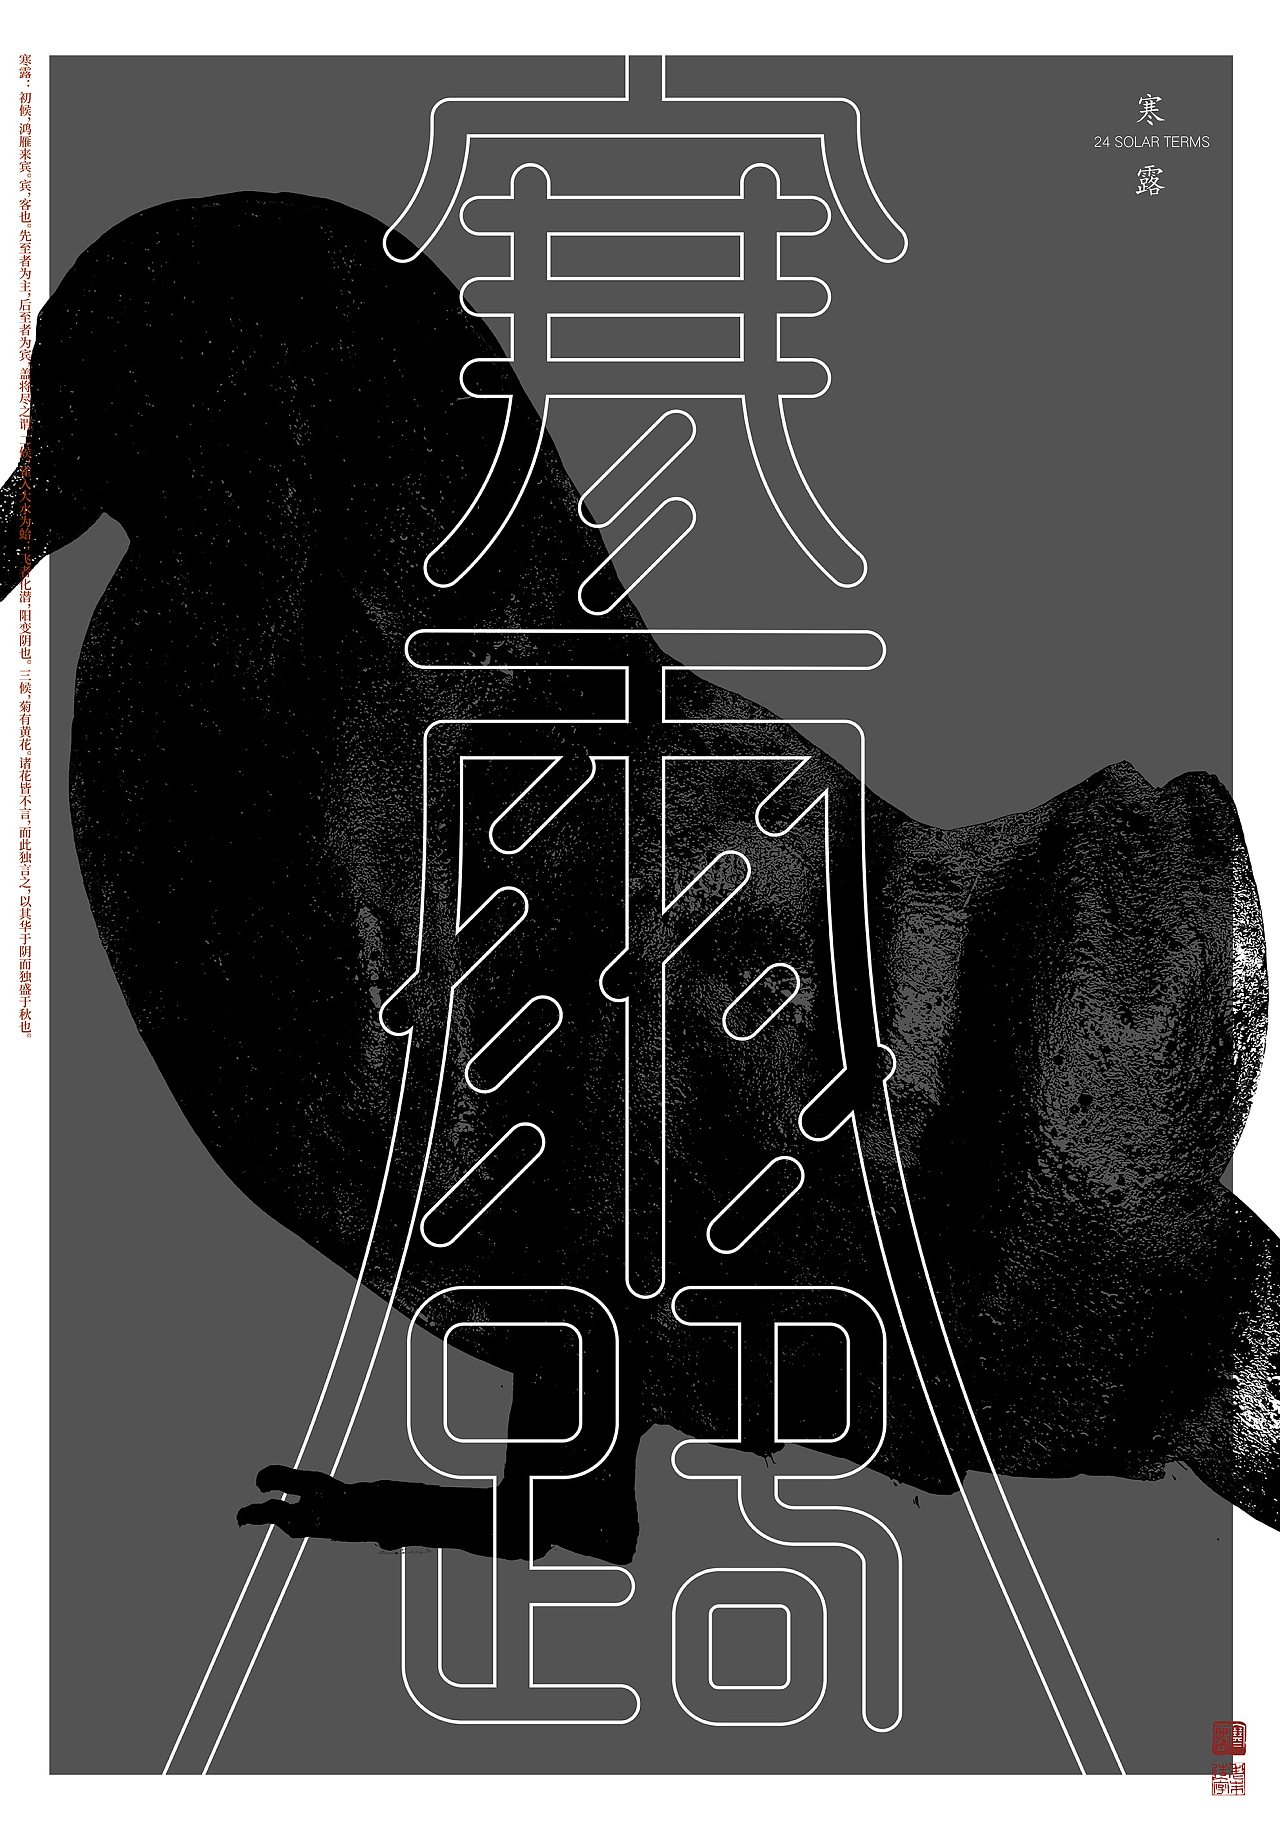 30P Creative abstract concept Chinese font design #.62